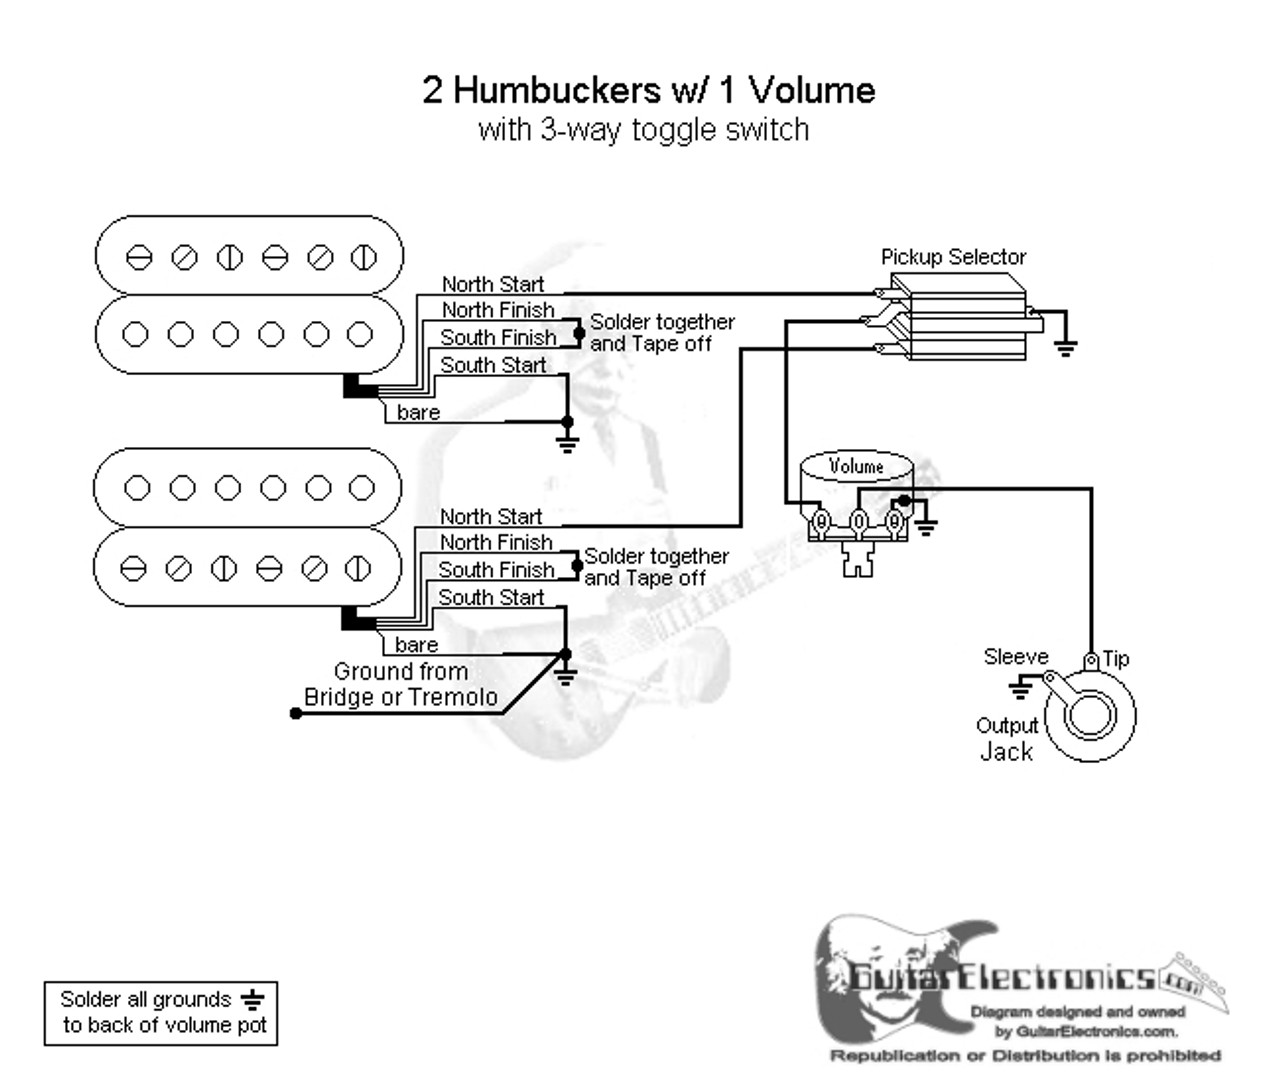 wiring schematic gibson 2 volume 1 tone online wiring diagram bass wiring diagram 1 volume 2 pickups wiring schematic gibson 2 volume 1 tone #11